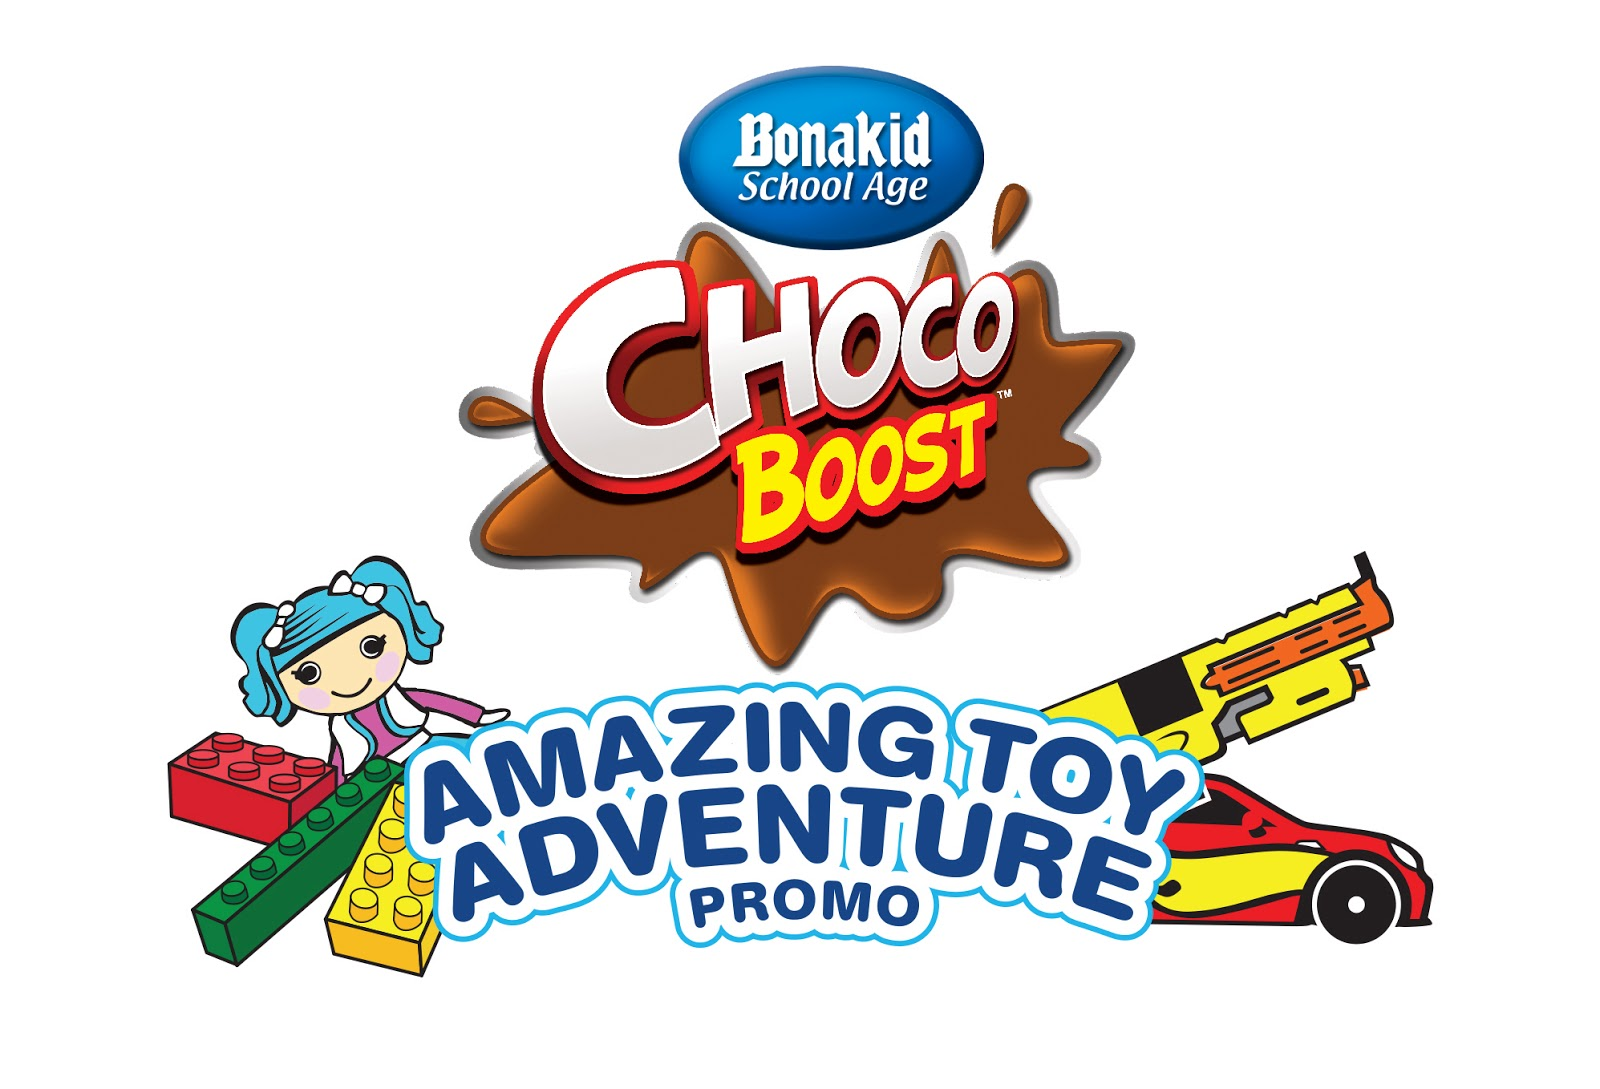 Bonakid Choco Boost Powers Up Kids For A 60 Second Toy